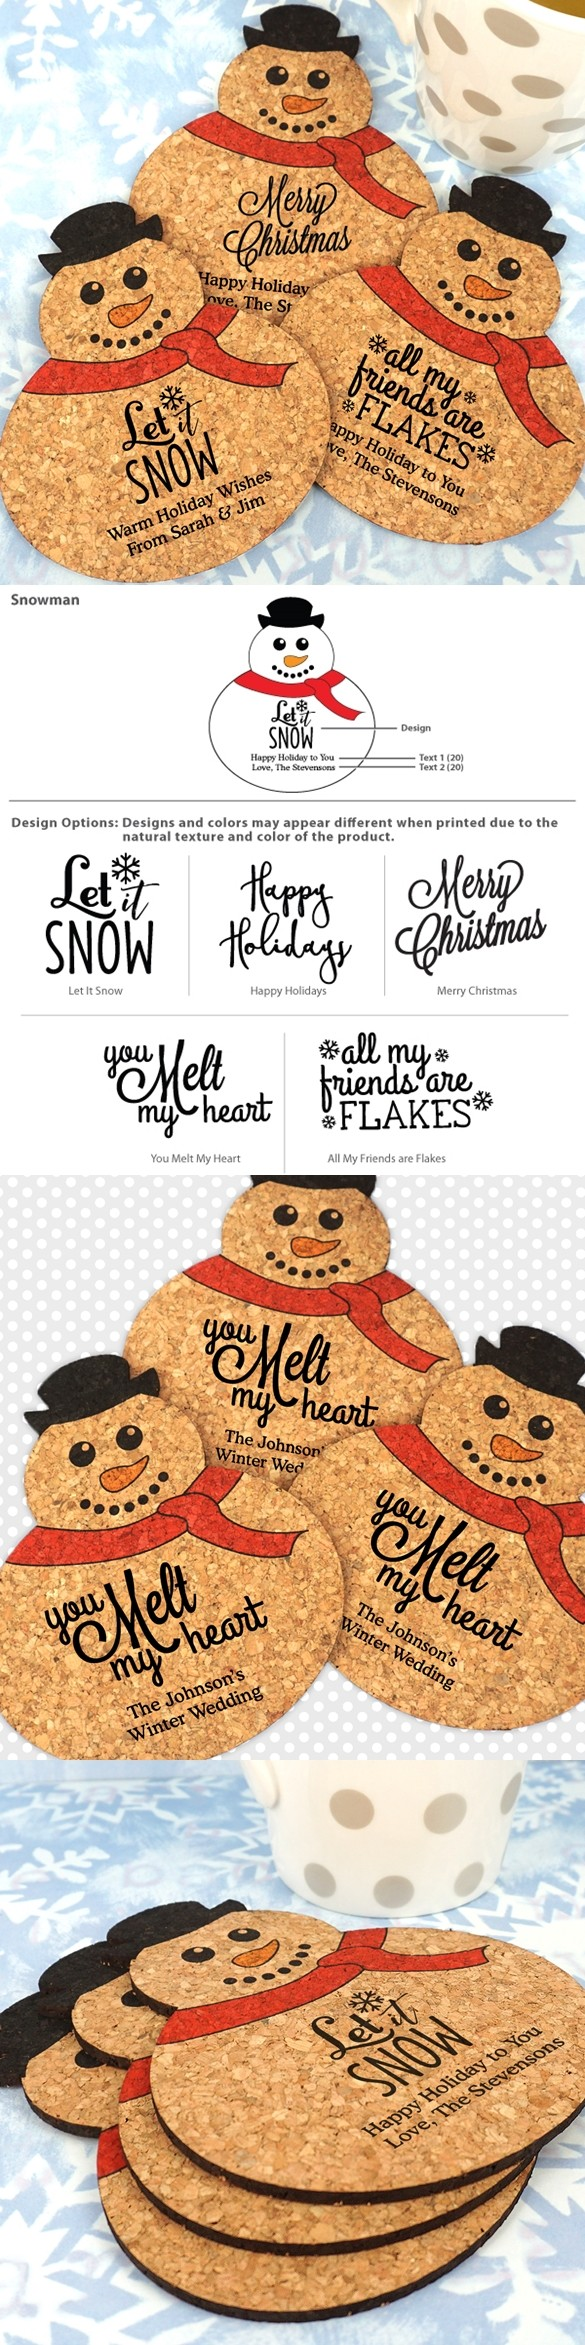 Personalized Snowman-Shaped Cork Coasters (5 Sayings; 15 Colors)